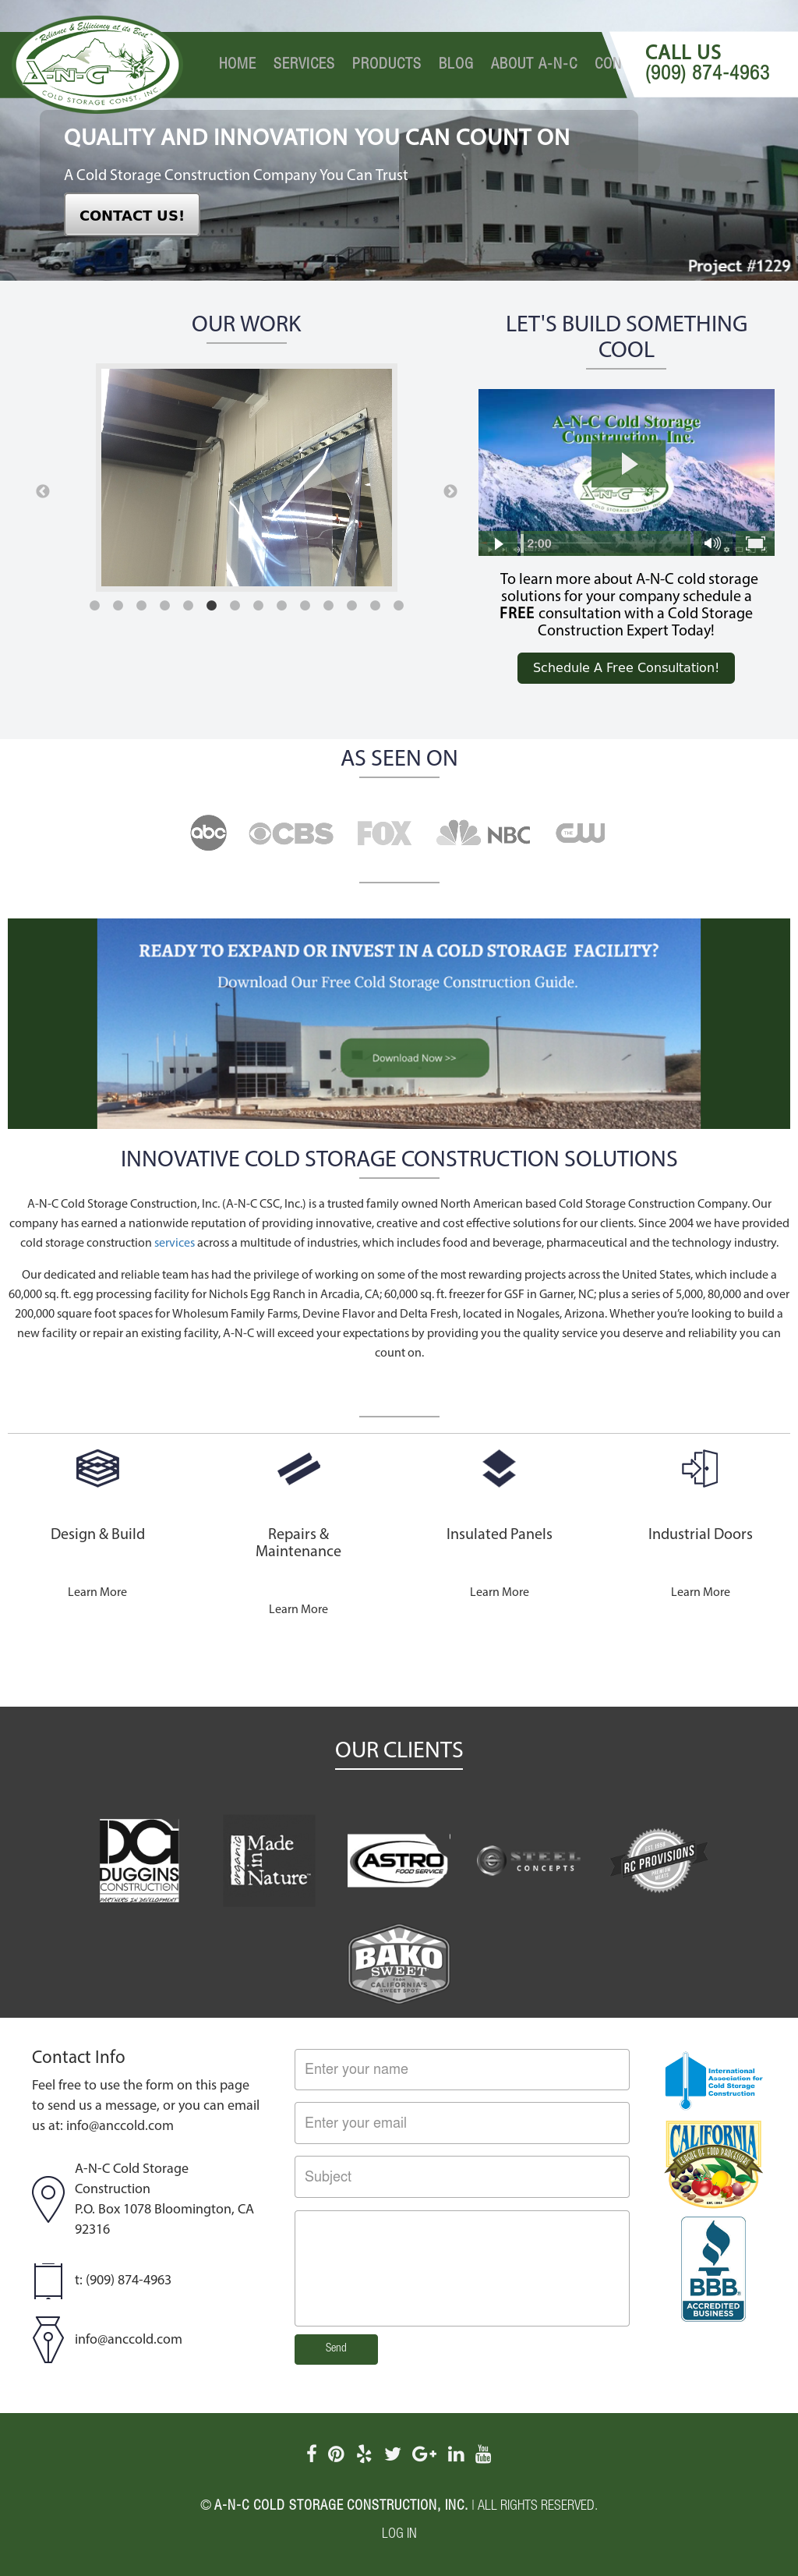 A-n-c Cold Storage Construction Competitors, Revenue and